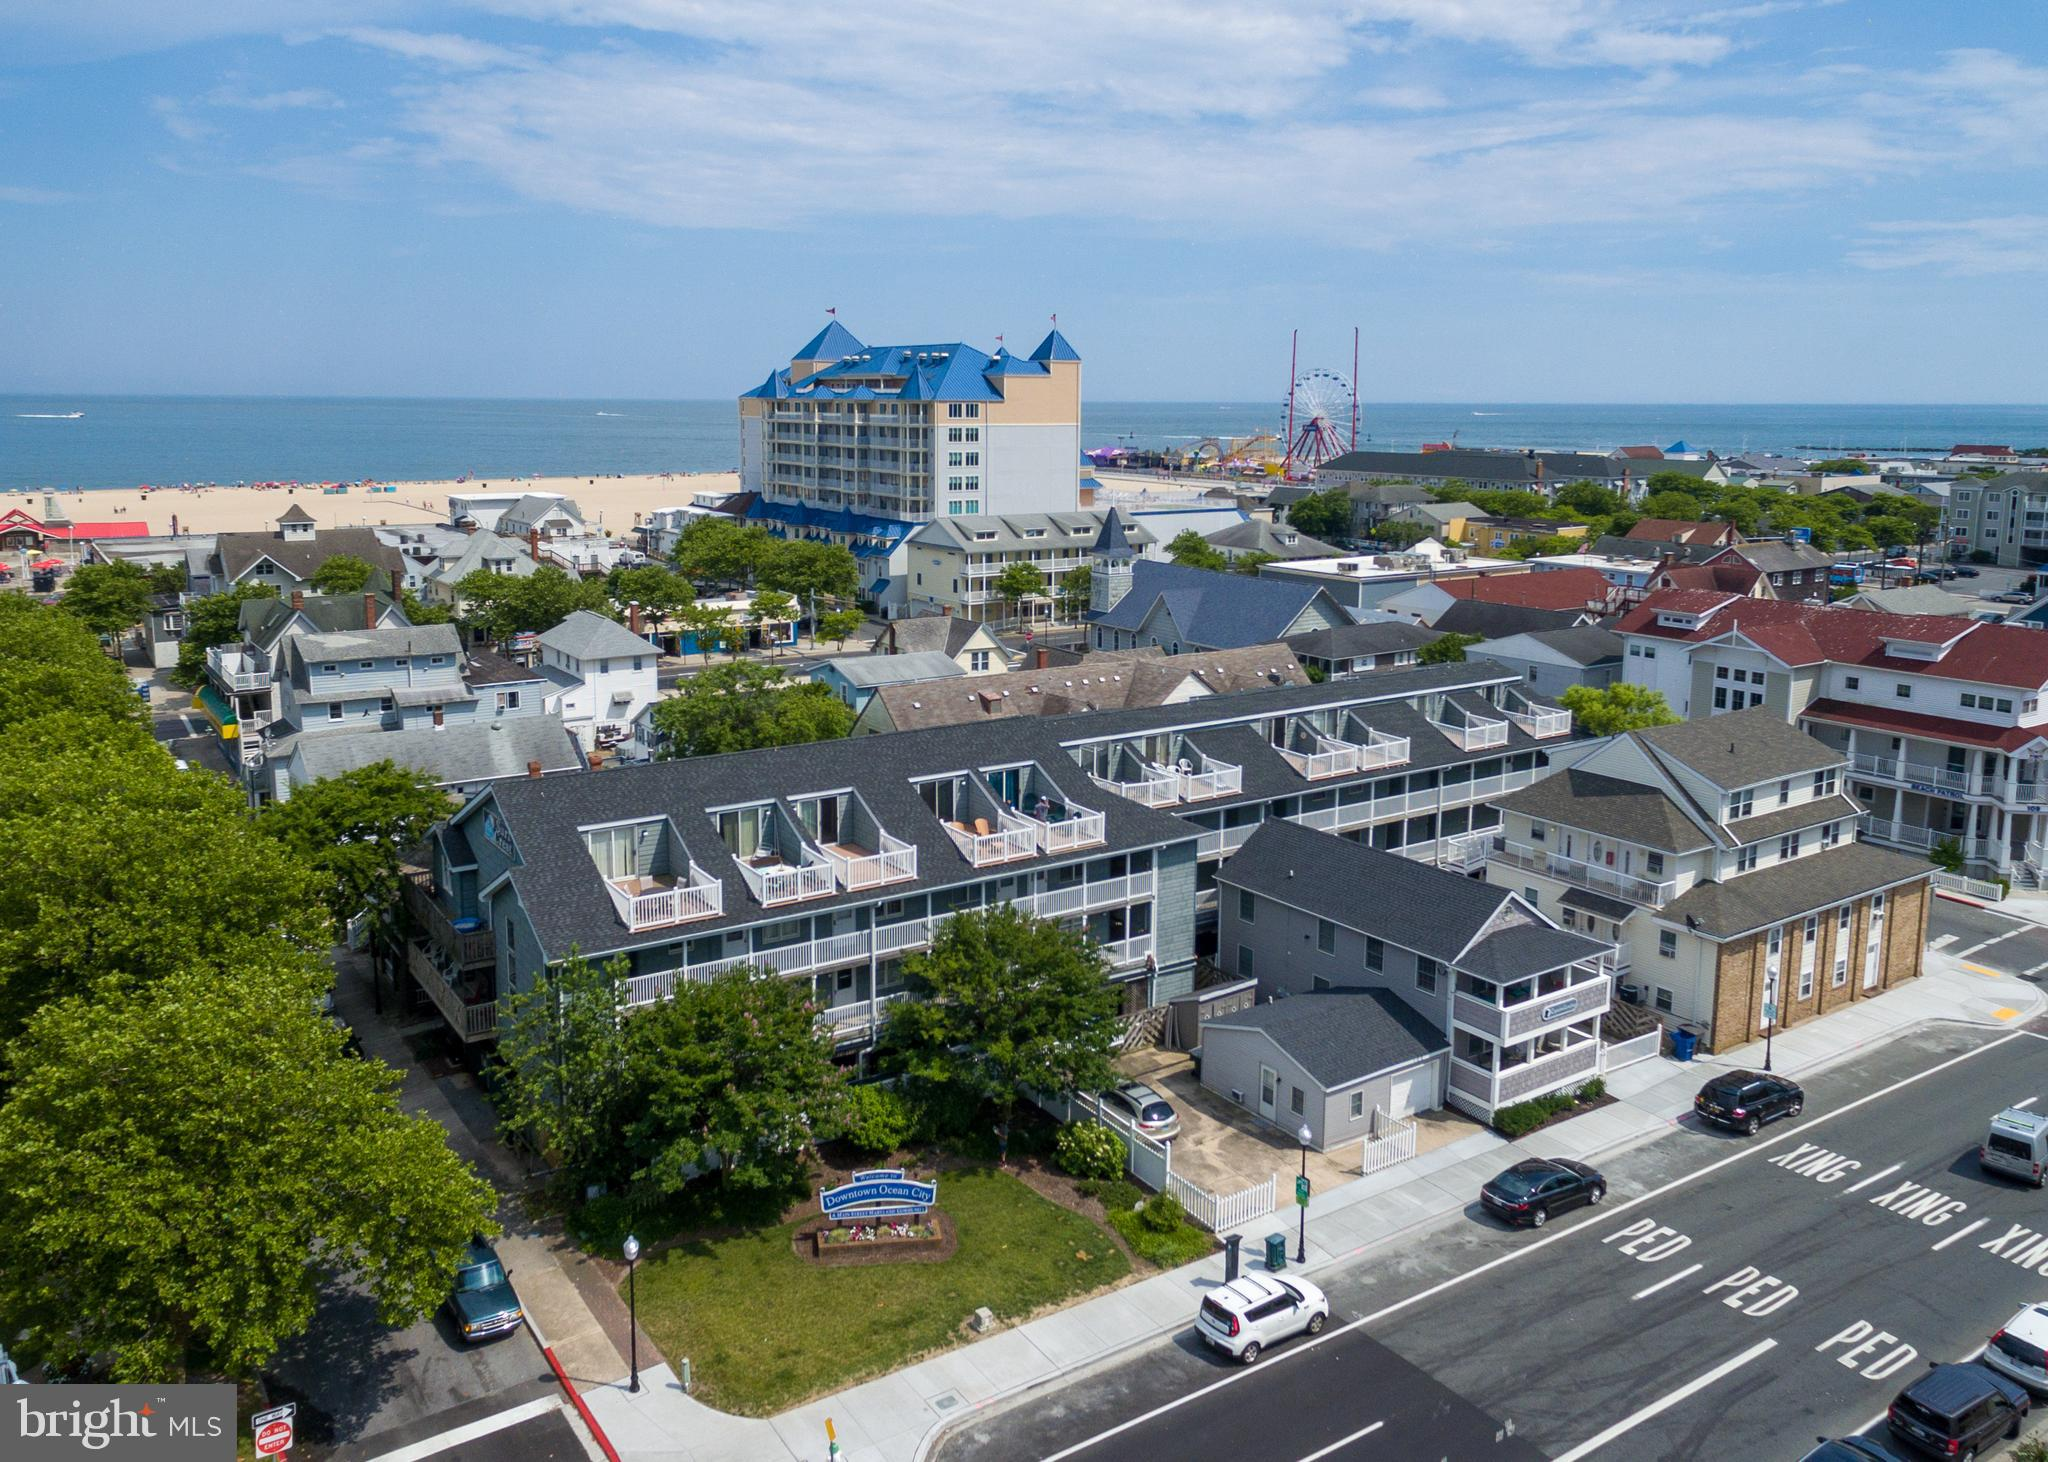 Large 2-level End-Unit Condo at the Surf Crest Condominiums.  This 2 Bedroom, 2 Bath Unit has excellent rental history and the Downtown Ocean City views are untouchable!  Superb Rental Income!